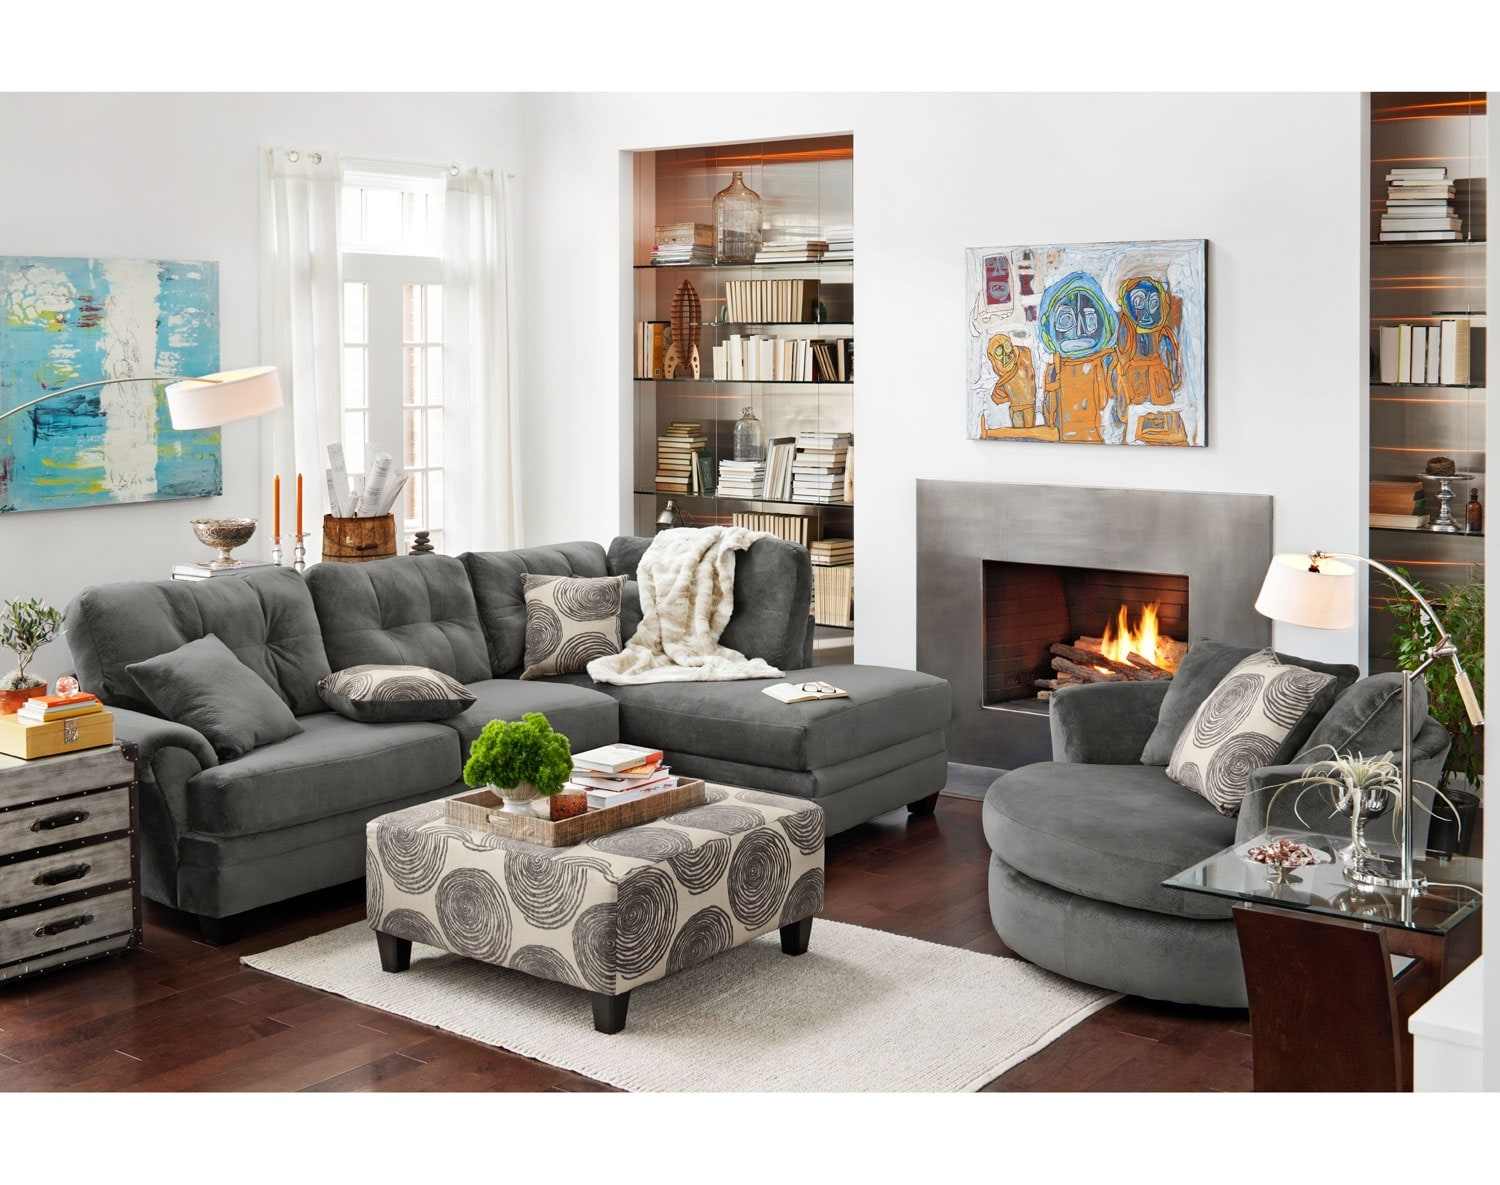 Living Room Sets Value City Furniture the cordelle sectional collection - gray | value city furniture